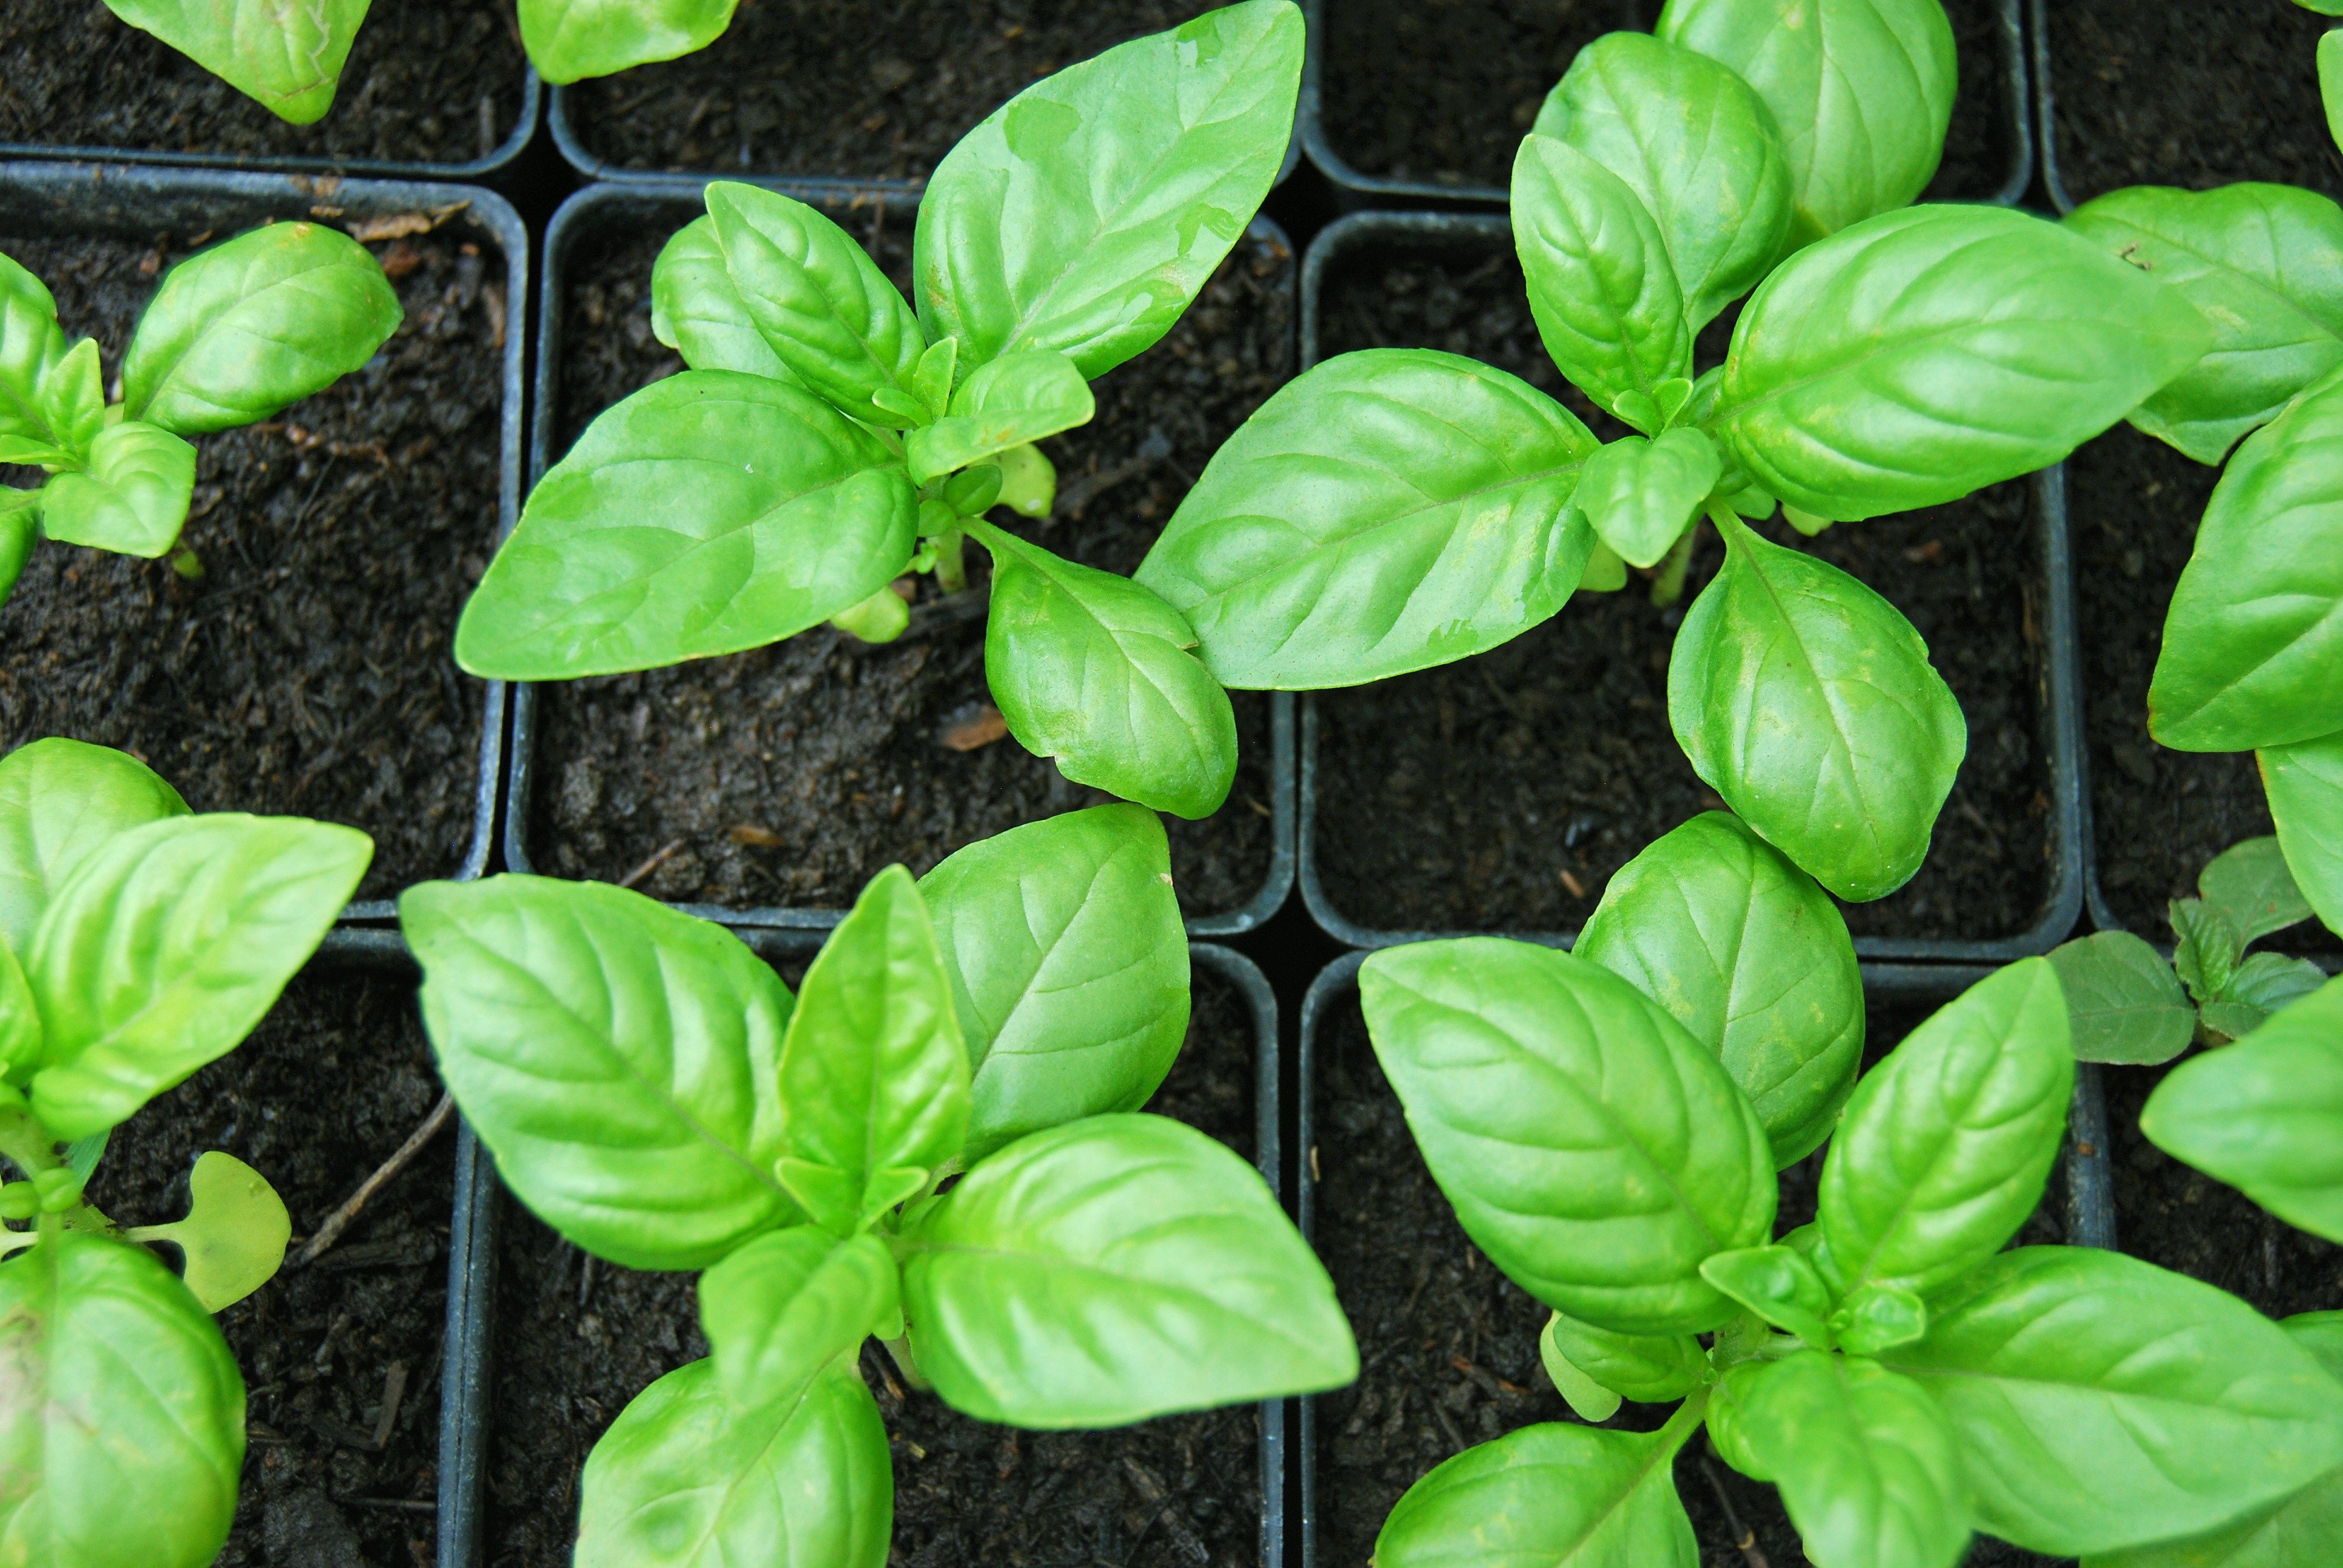 7 tips for growing mad giant basil plants | Basil plant, Plants and